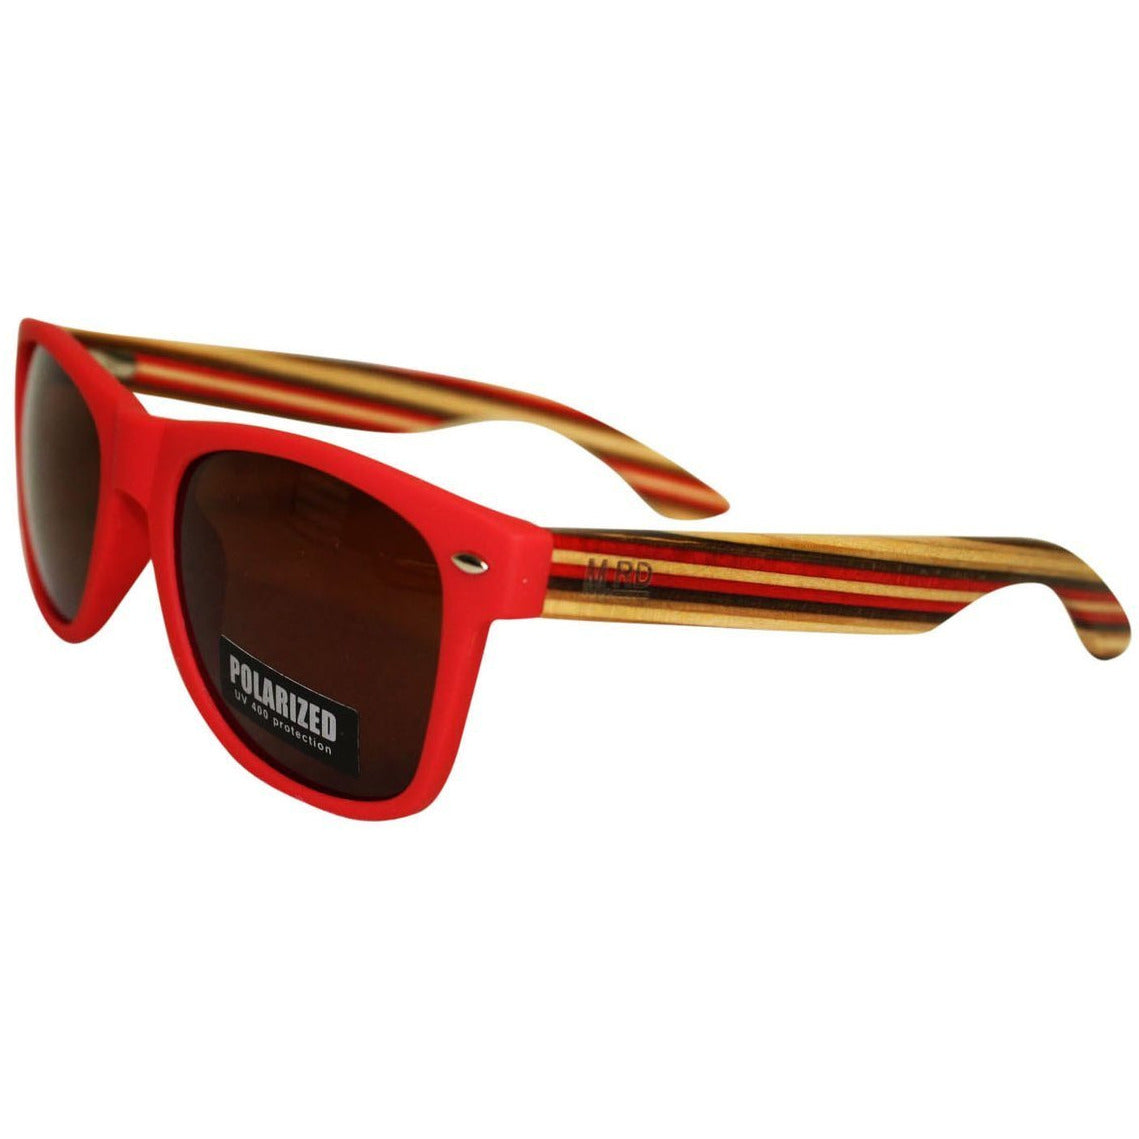 WOODEN SUNNIES MATTE RED w STRIPED ARMS BROWN LENS